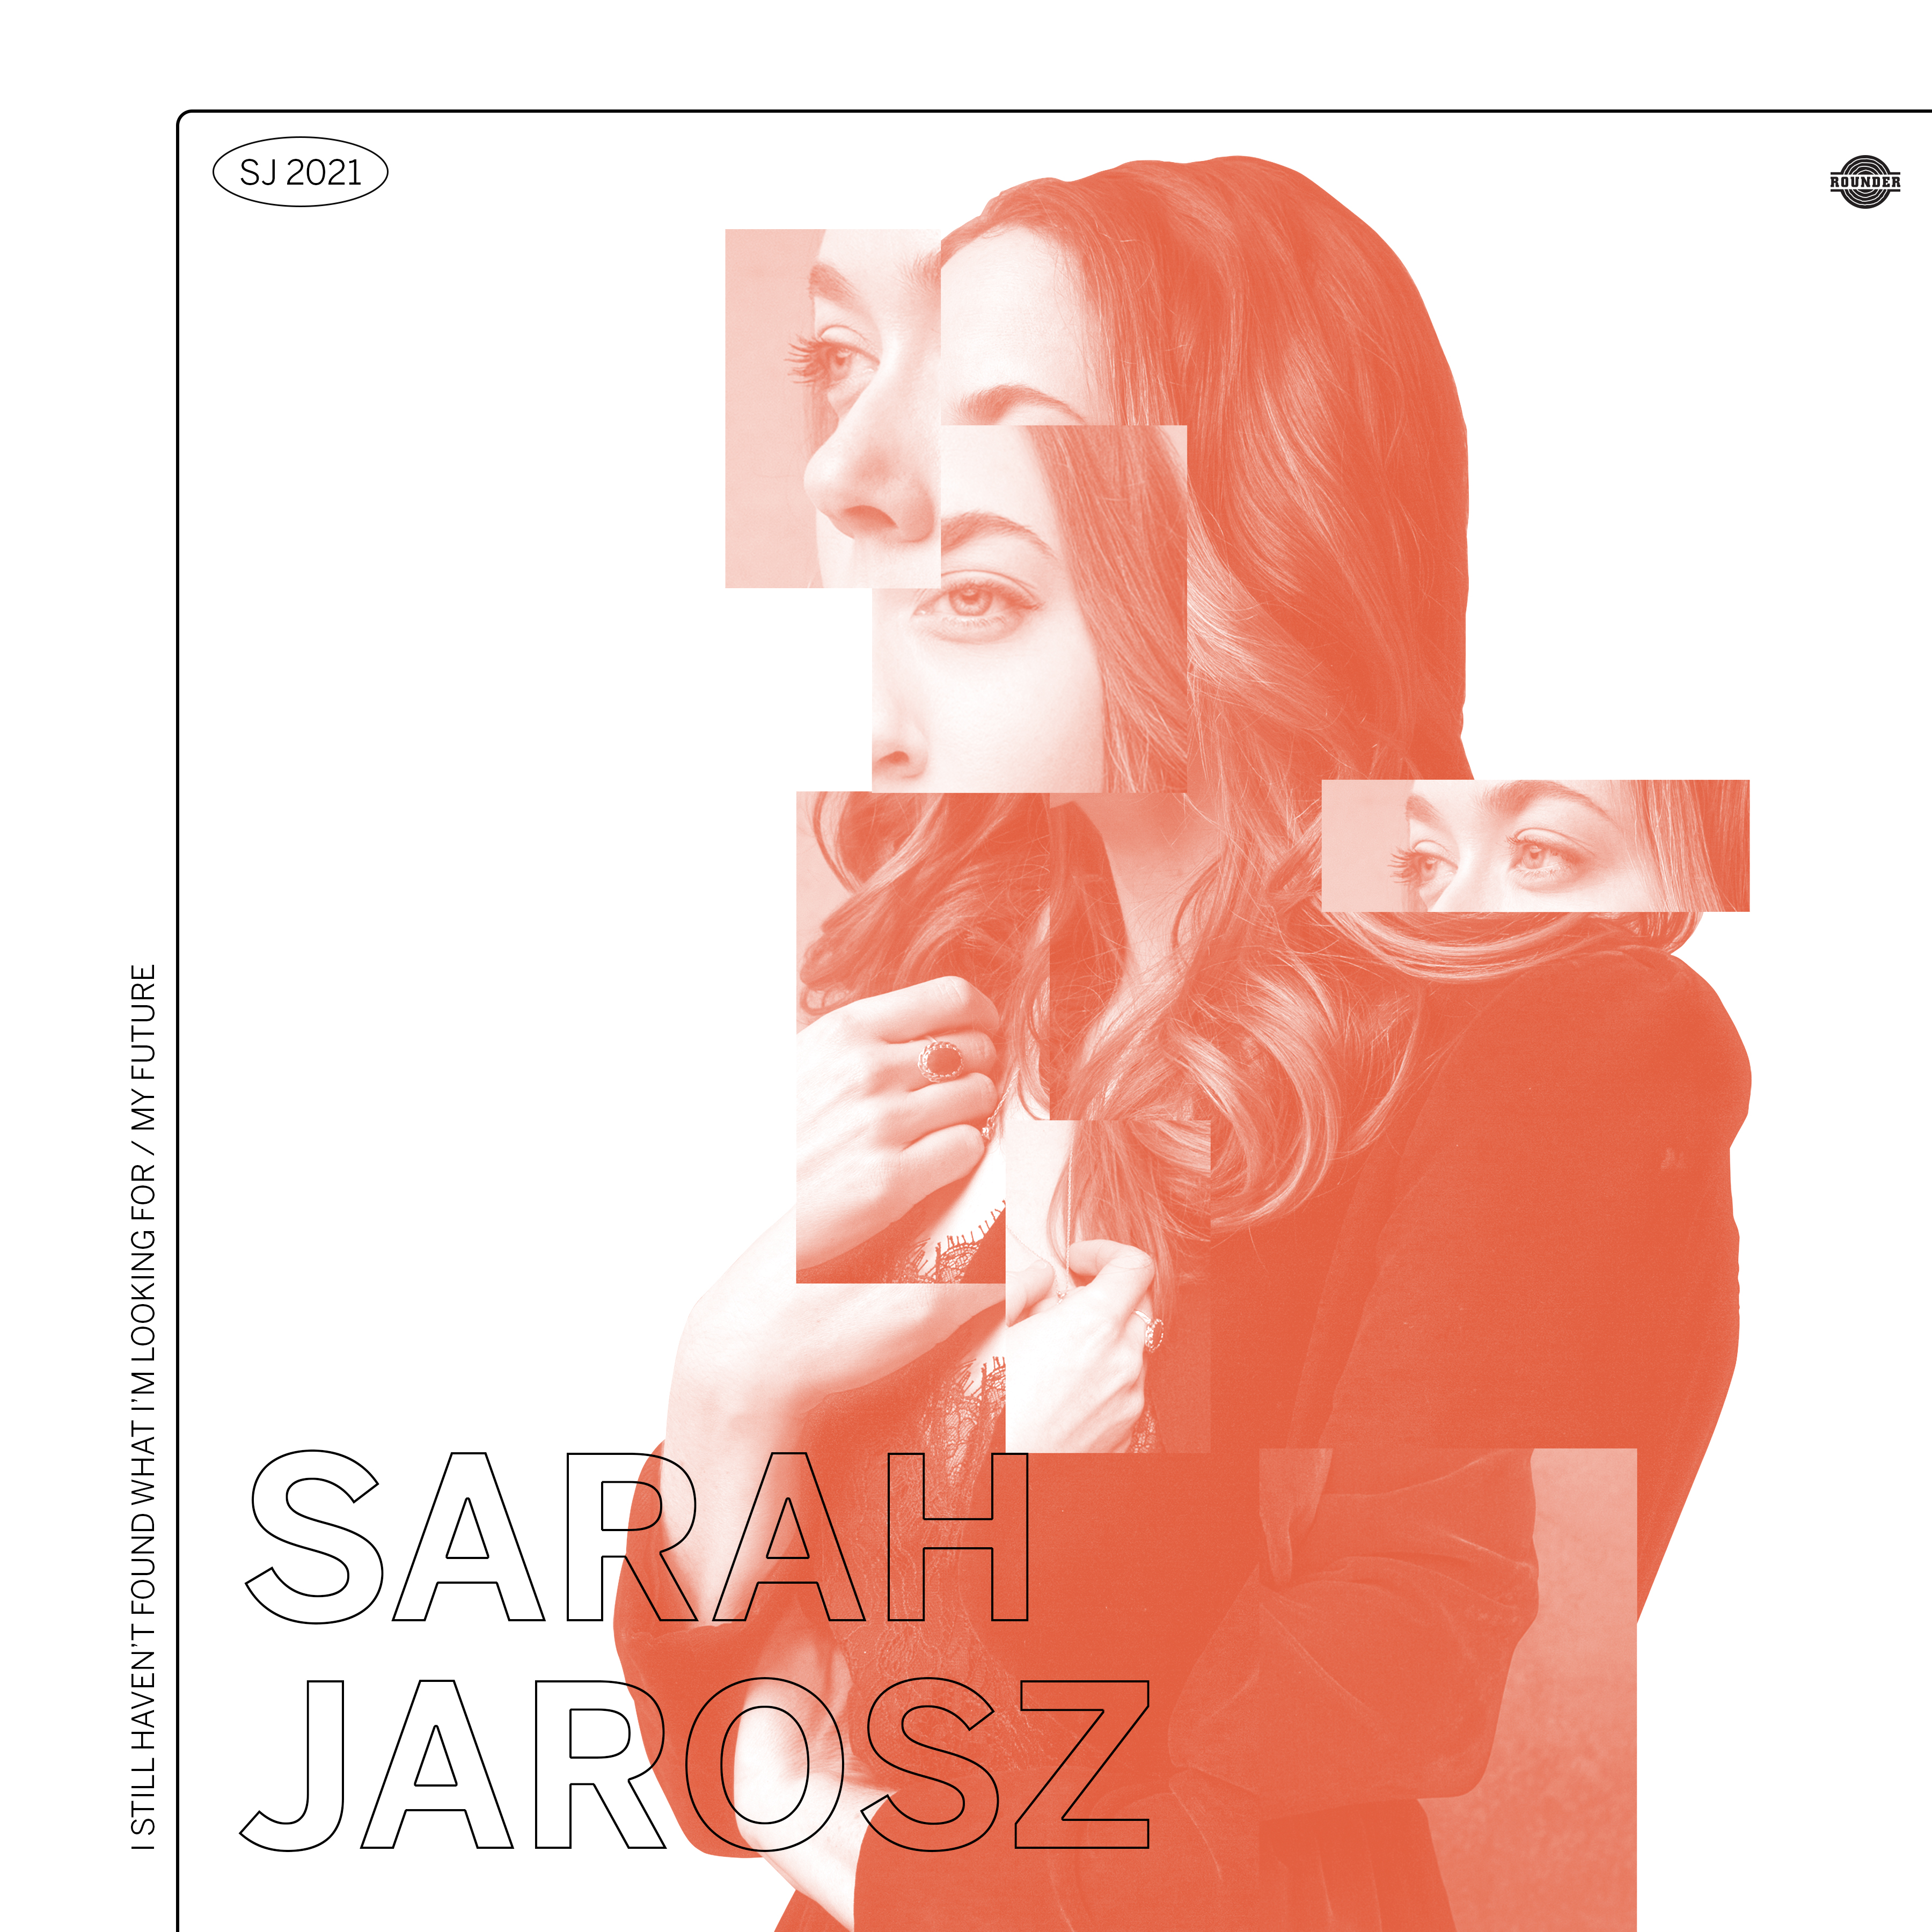 Sarah Jarosz - I Still Haven't Found What I'm Looking For/my future [RSD Drops 2021]